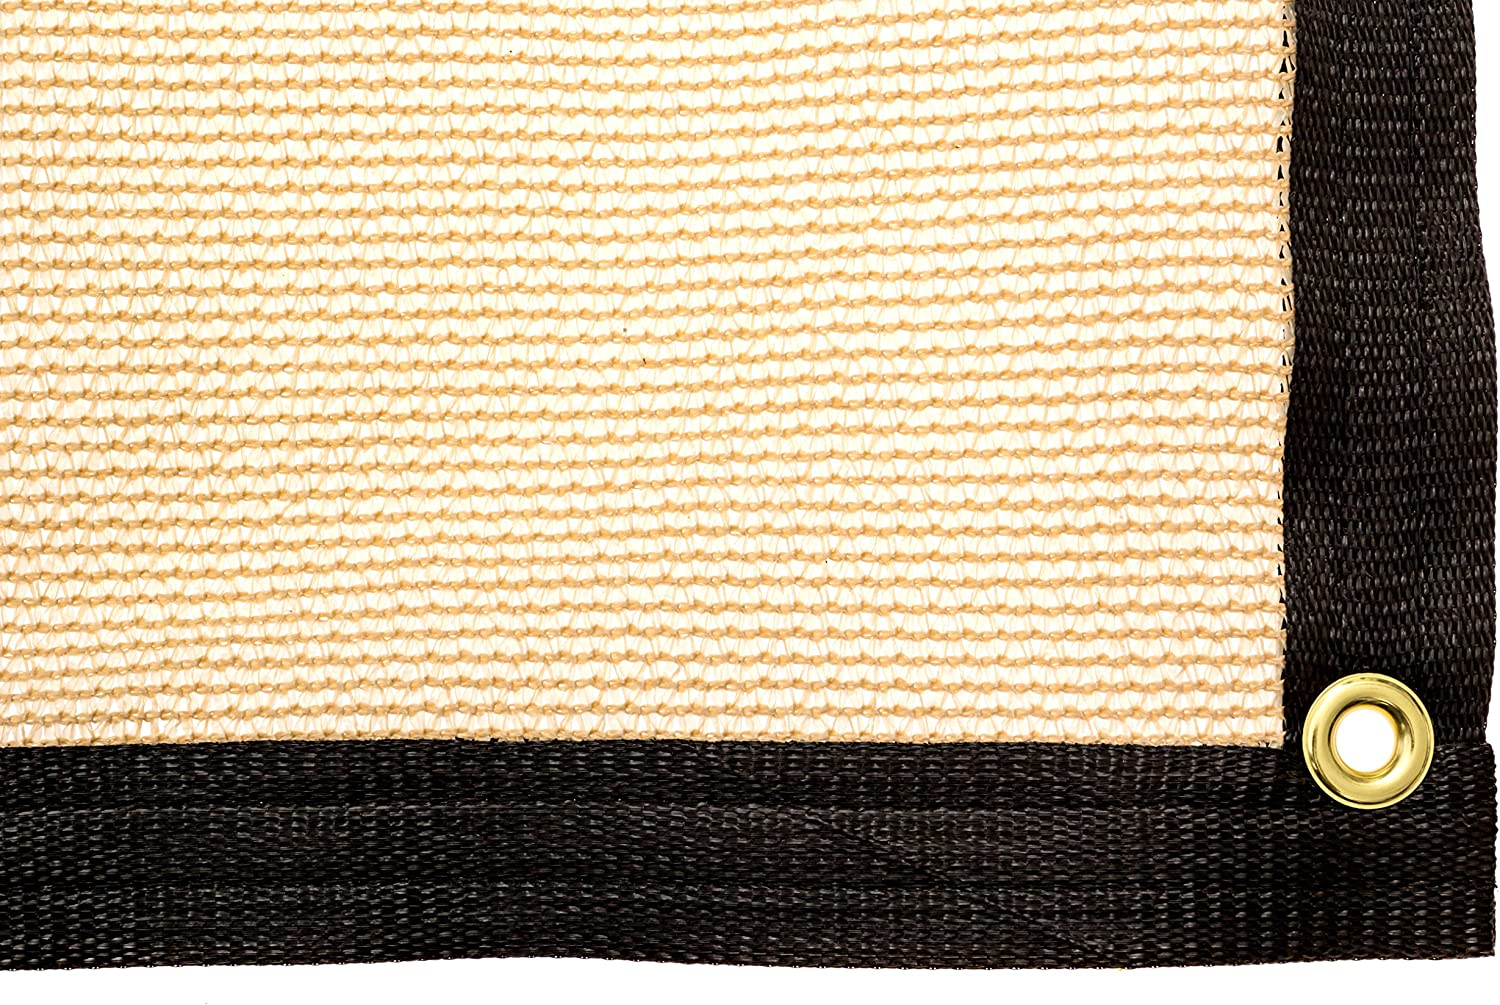 Be Cool Solutions 70% Brown Outdoor Sun Shade Canopy: UV Protection Shade Cloth  Lightweight, Easy Setup Mesh Canopy Cover with Grommets  Sturdy, Durable Shade Fabric for Garden, Patio & Porch 12'x20'